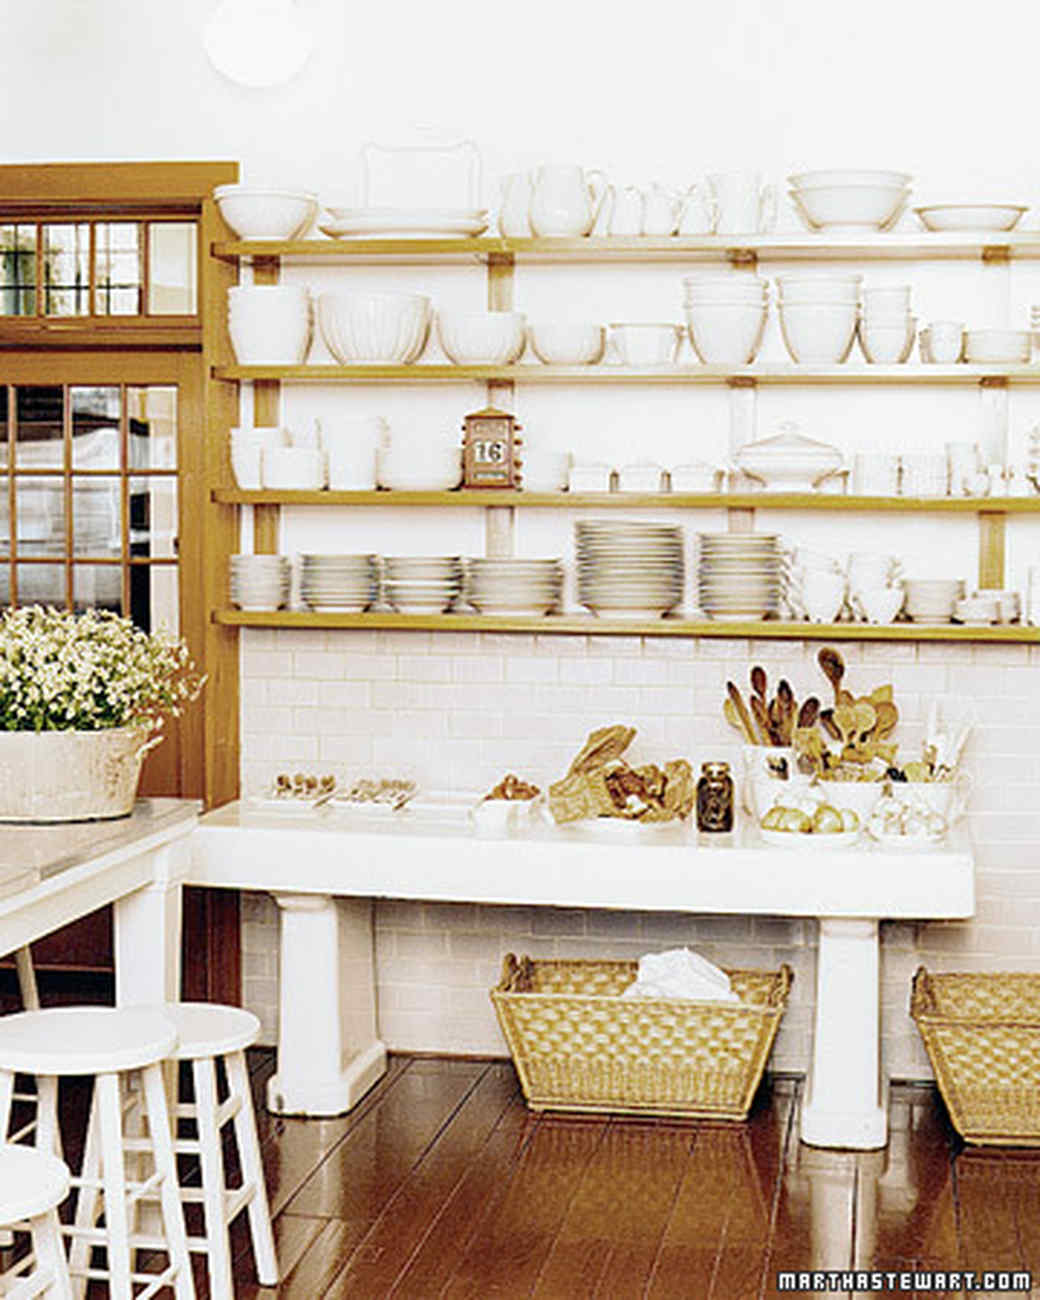 Martha 39 s skylands kitchen martha stewart - Martha stewart kitchen design ...